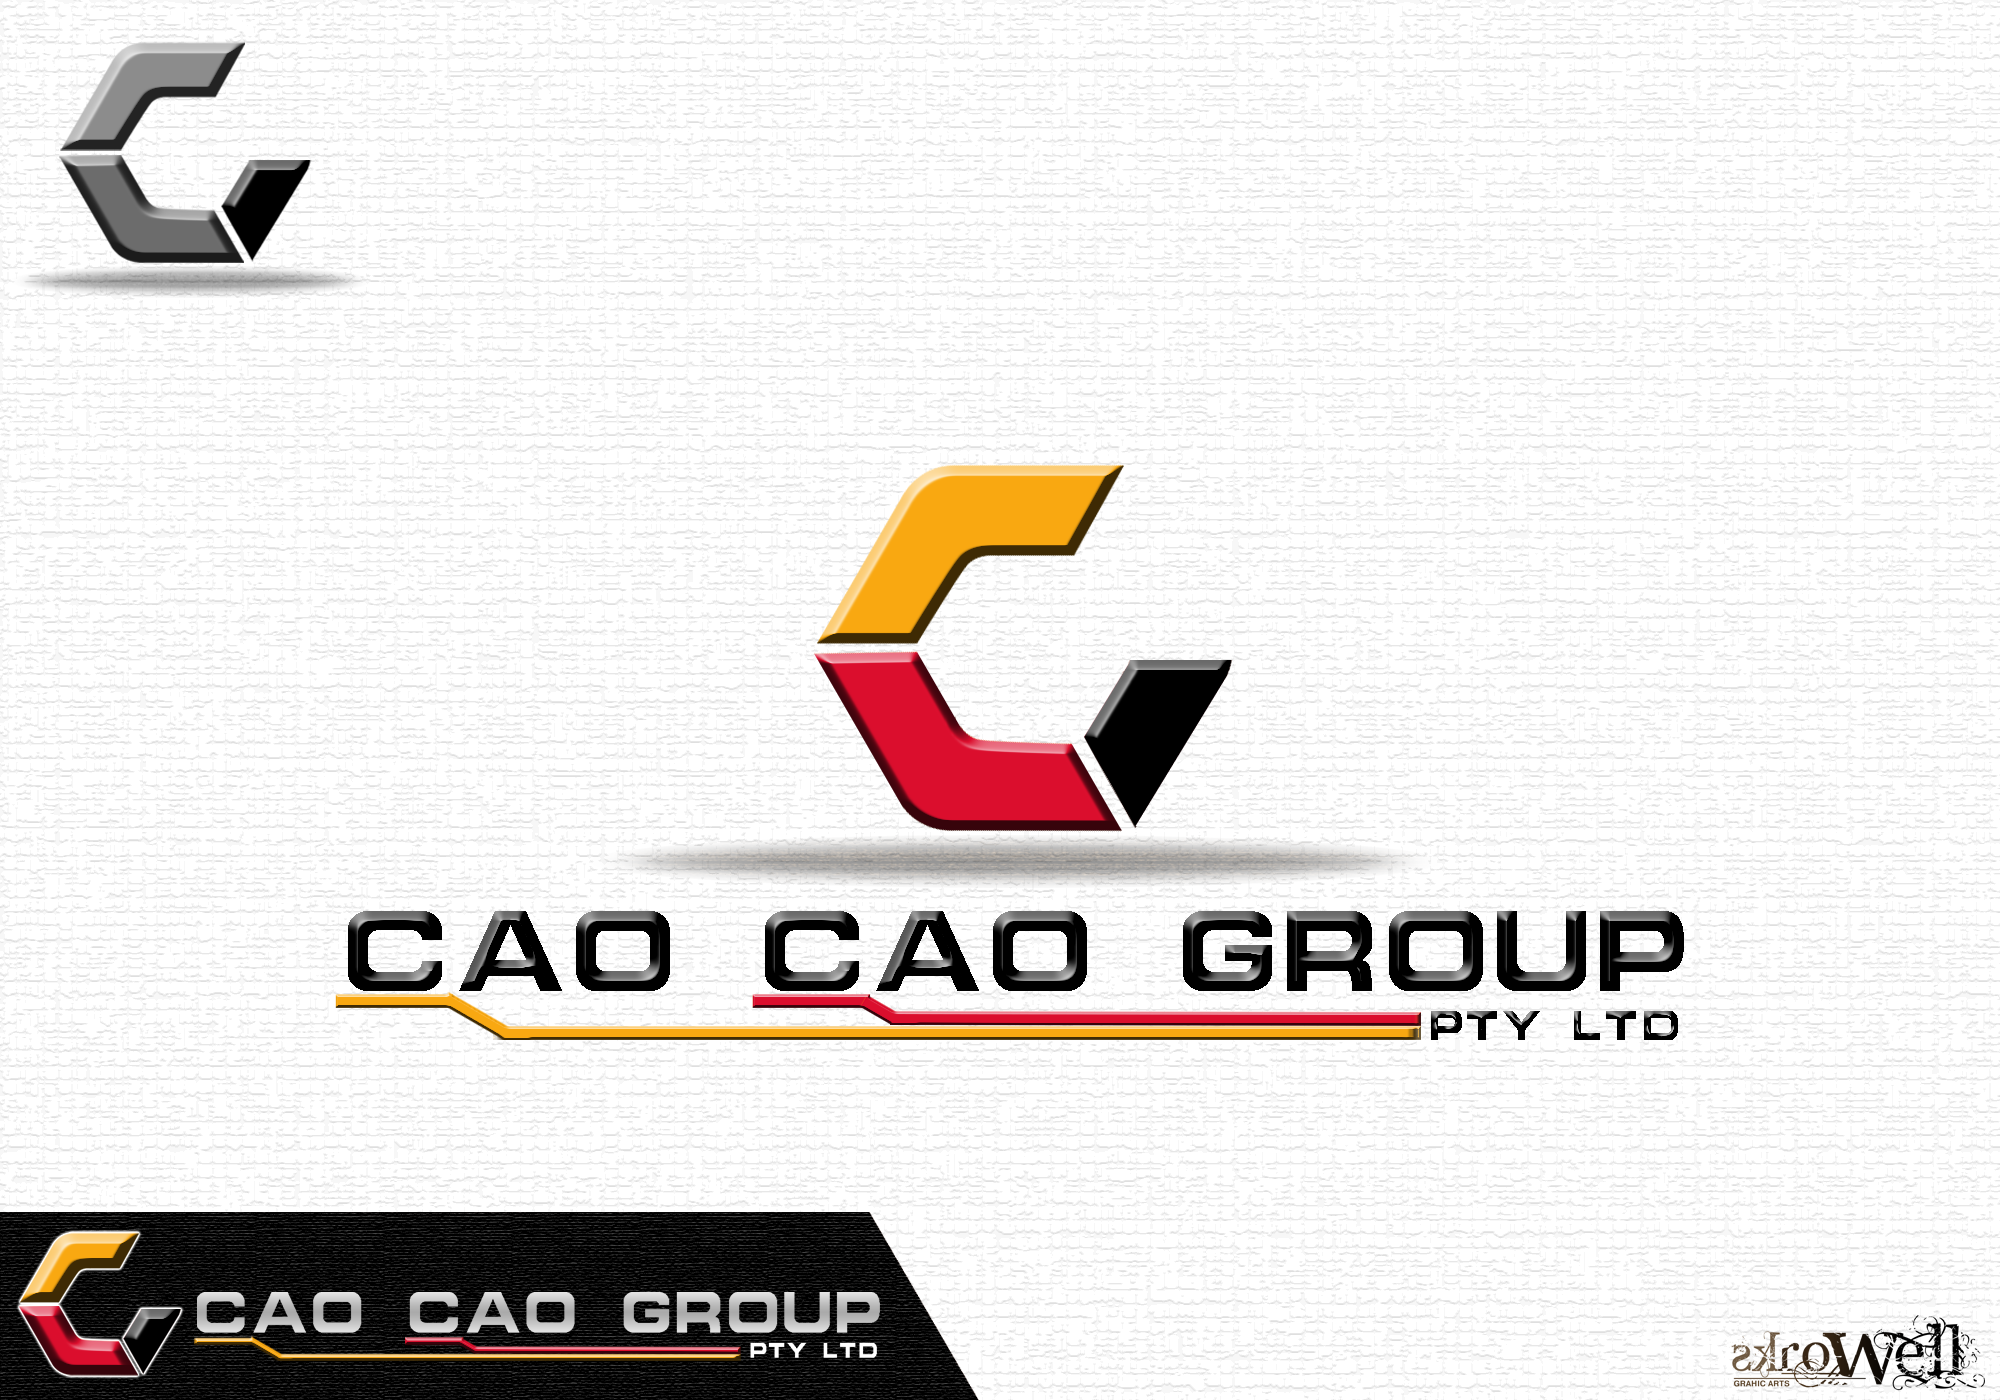 Logo Design by Rowell - Entry No. 133 in the Logo Design Contest cao cao group pty ltd Logo Design.